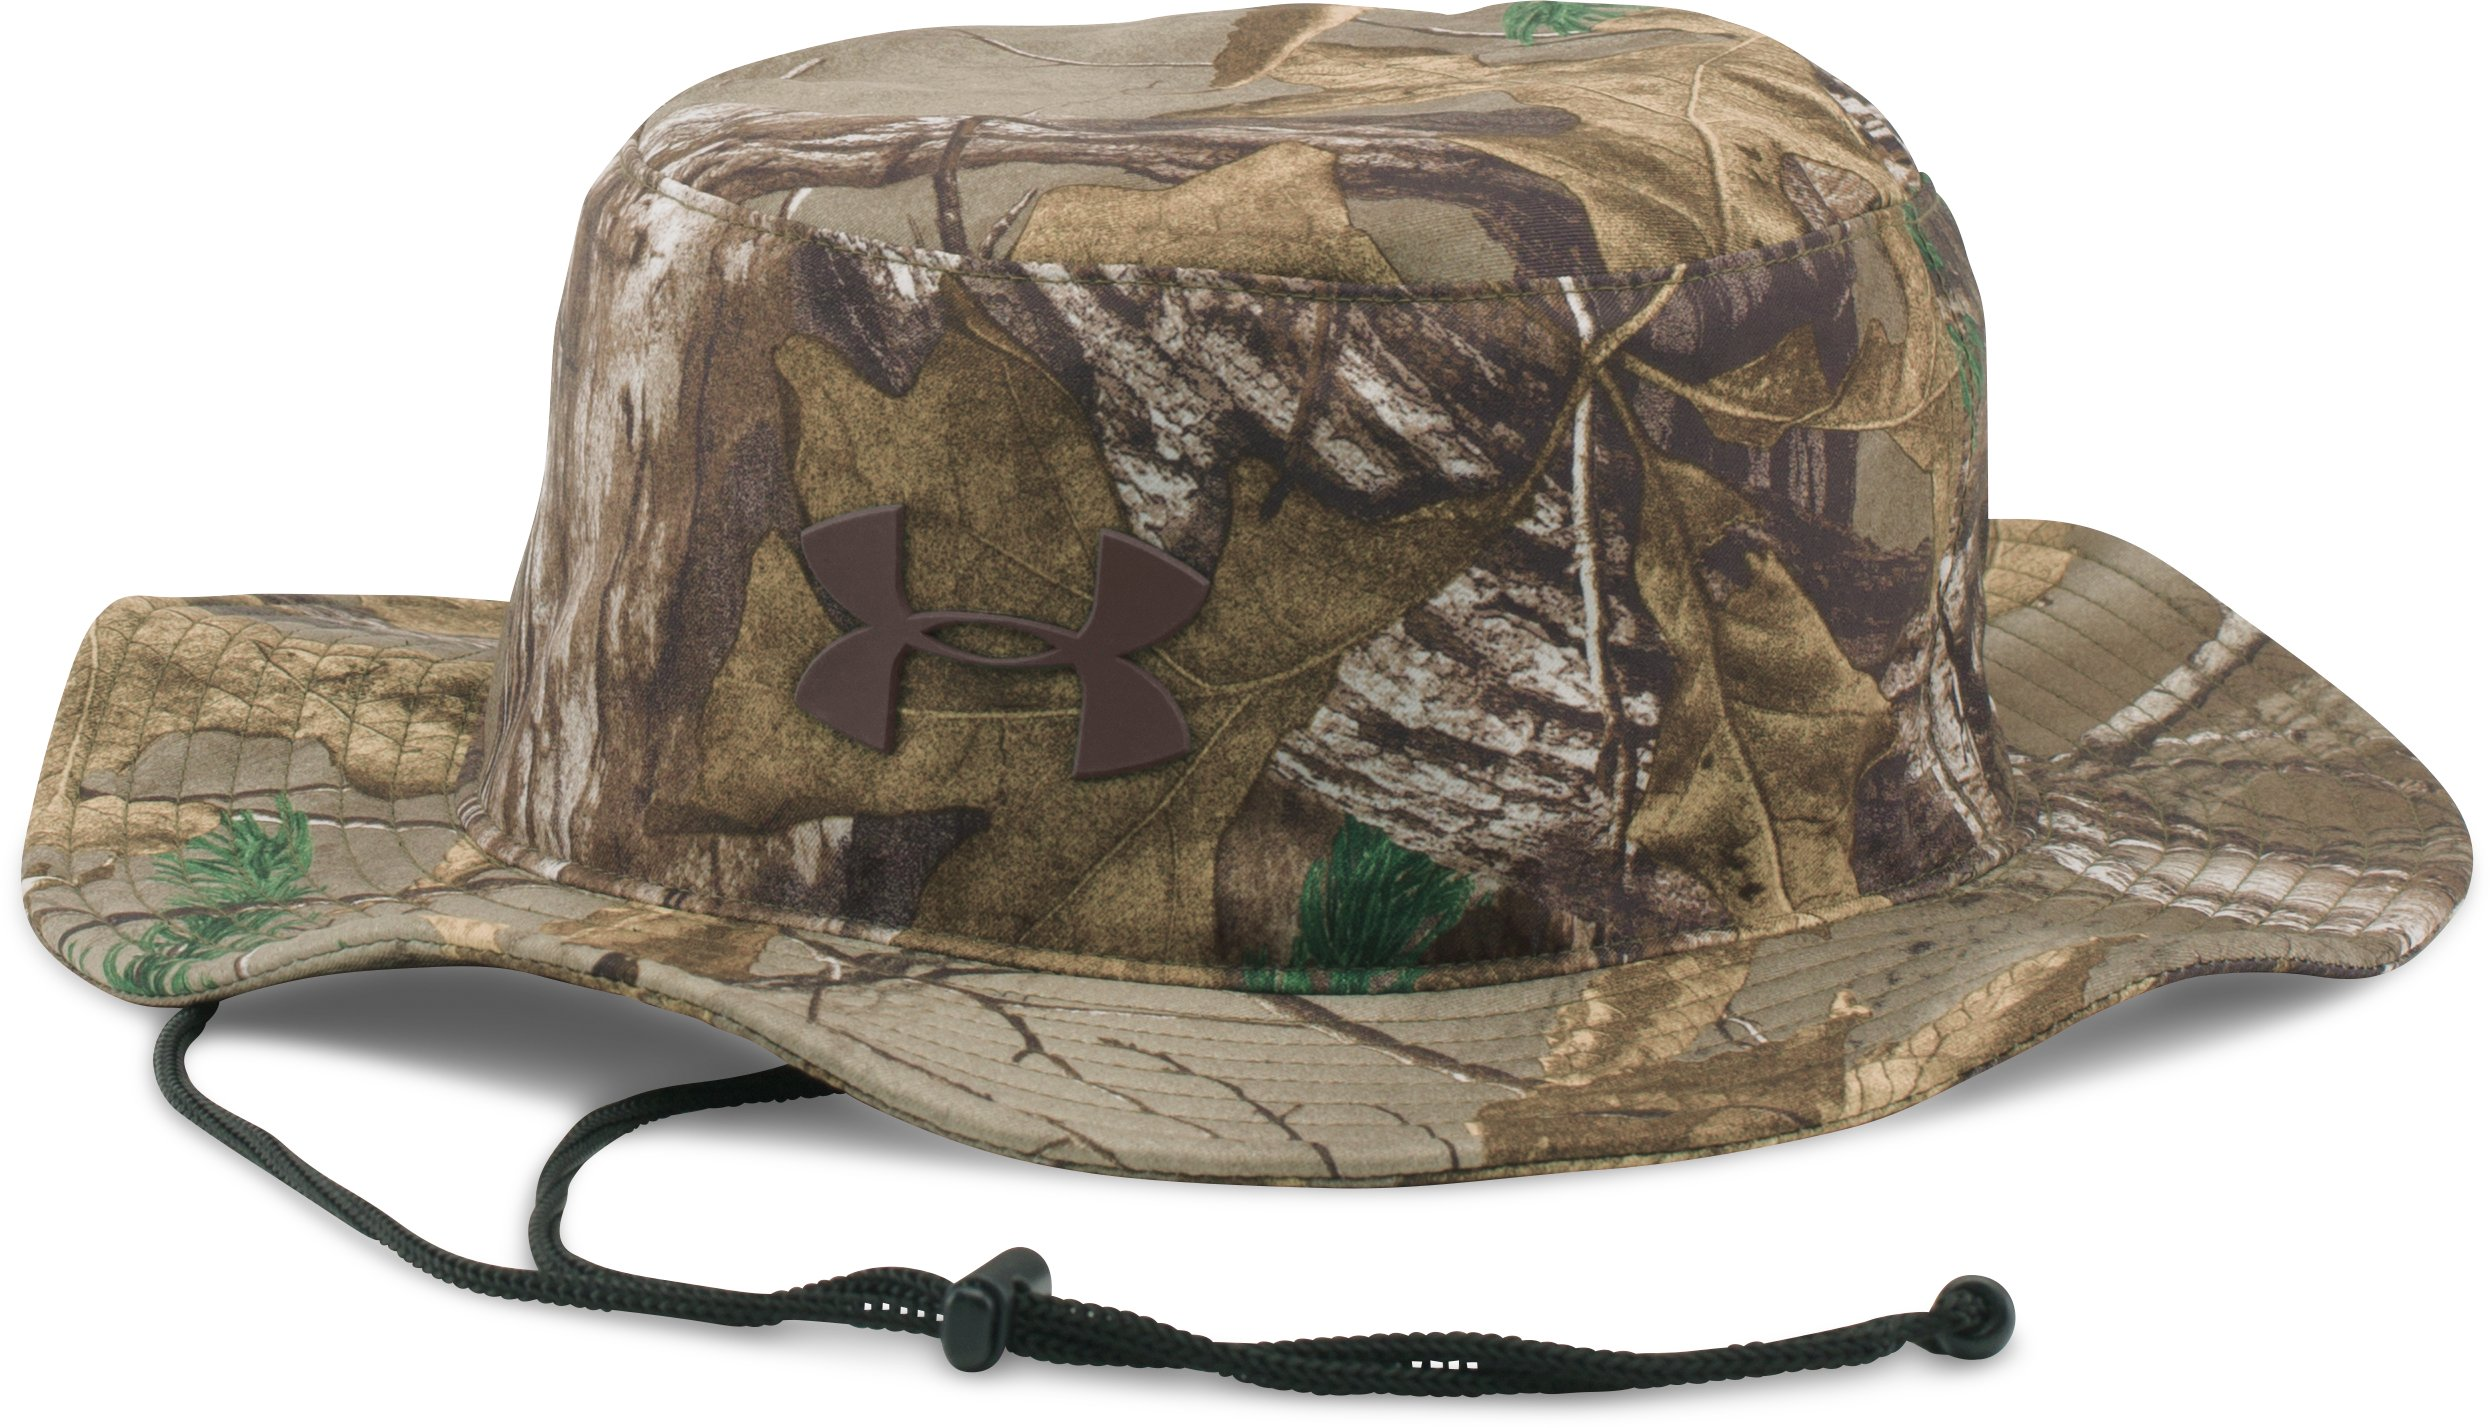 UA Camo Bucket Hat, REALTREE AP-XTRA